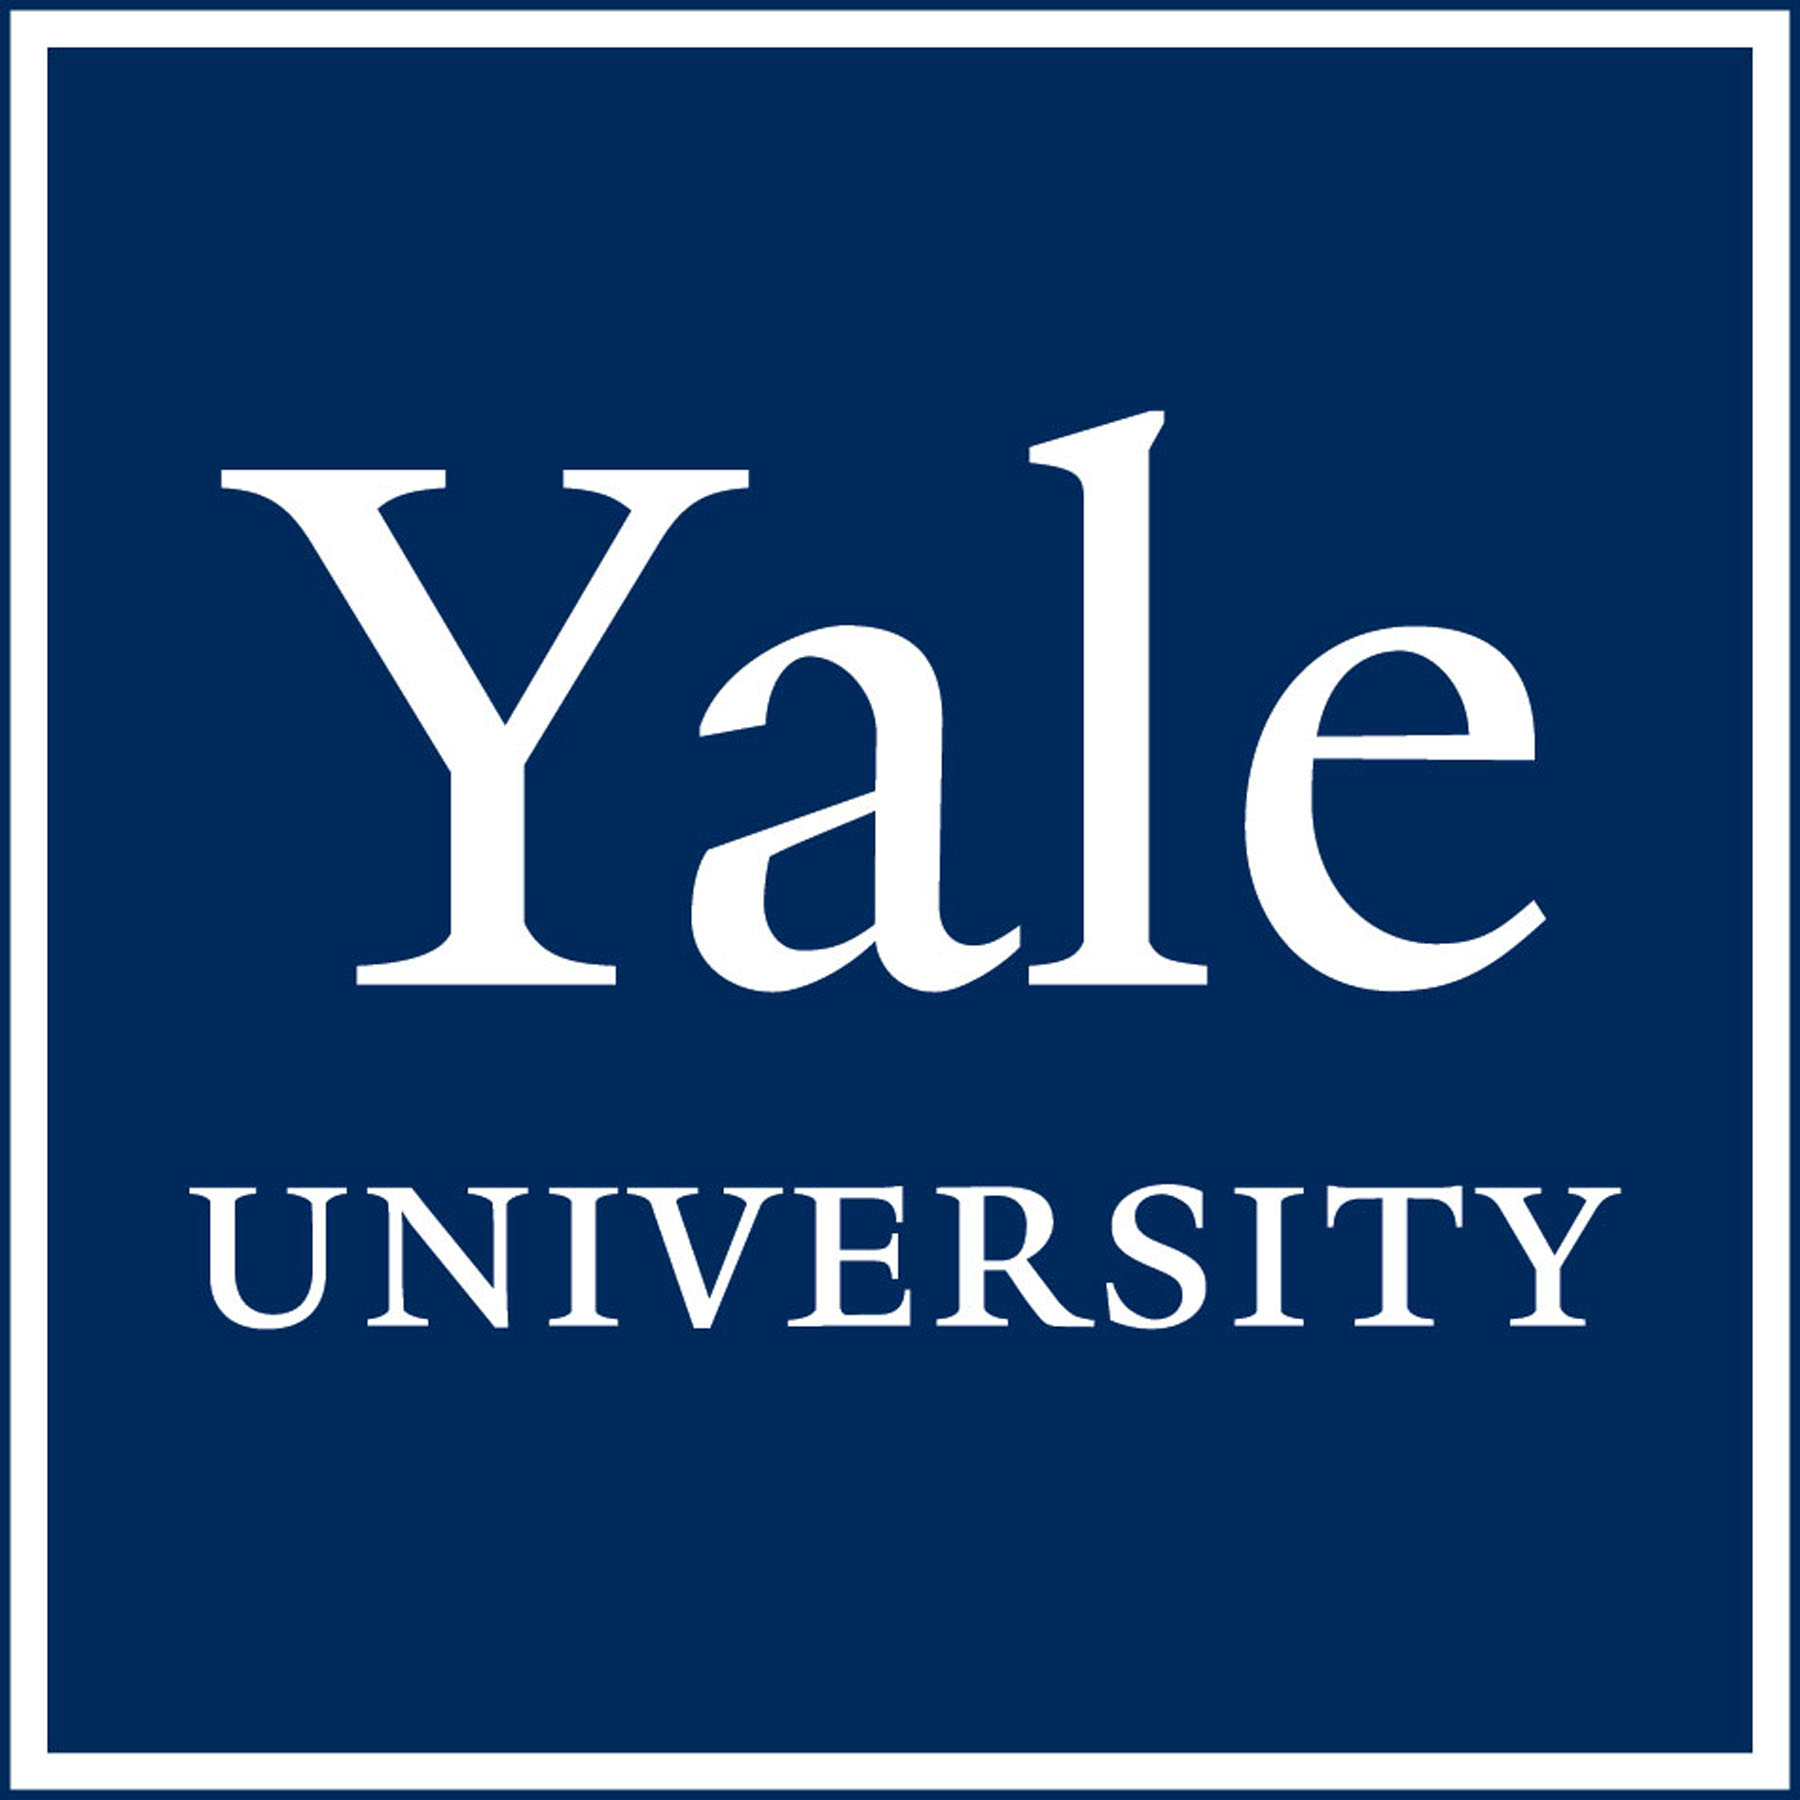 For people who were accepted to Yale: do I have a good chance of getting in?